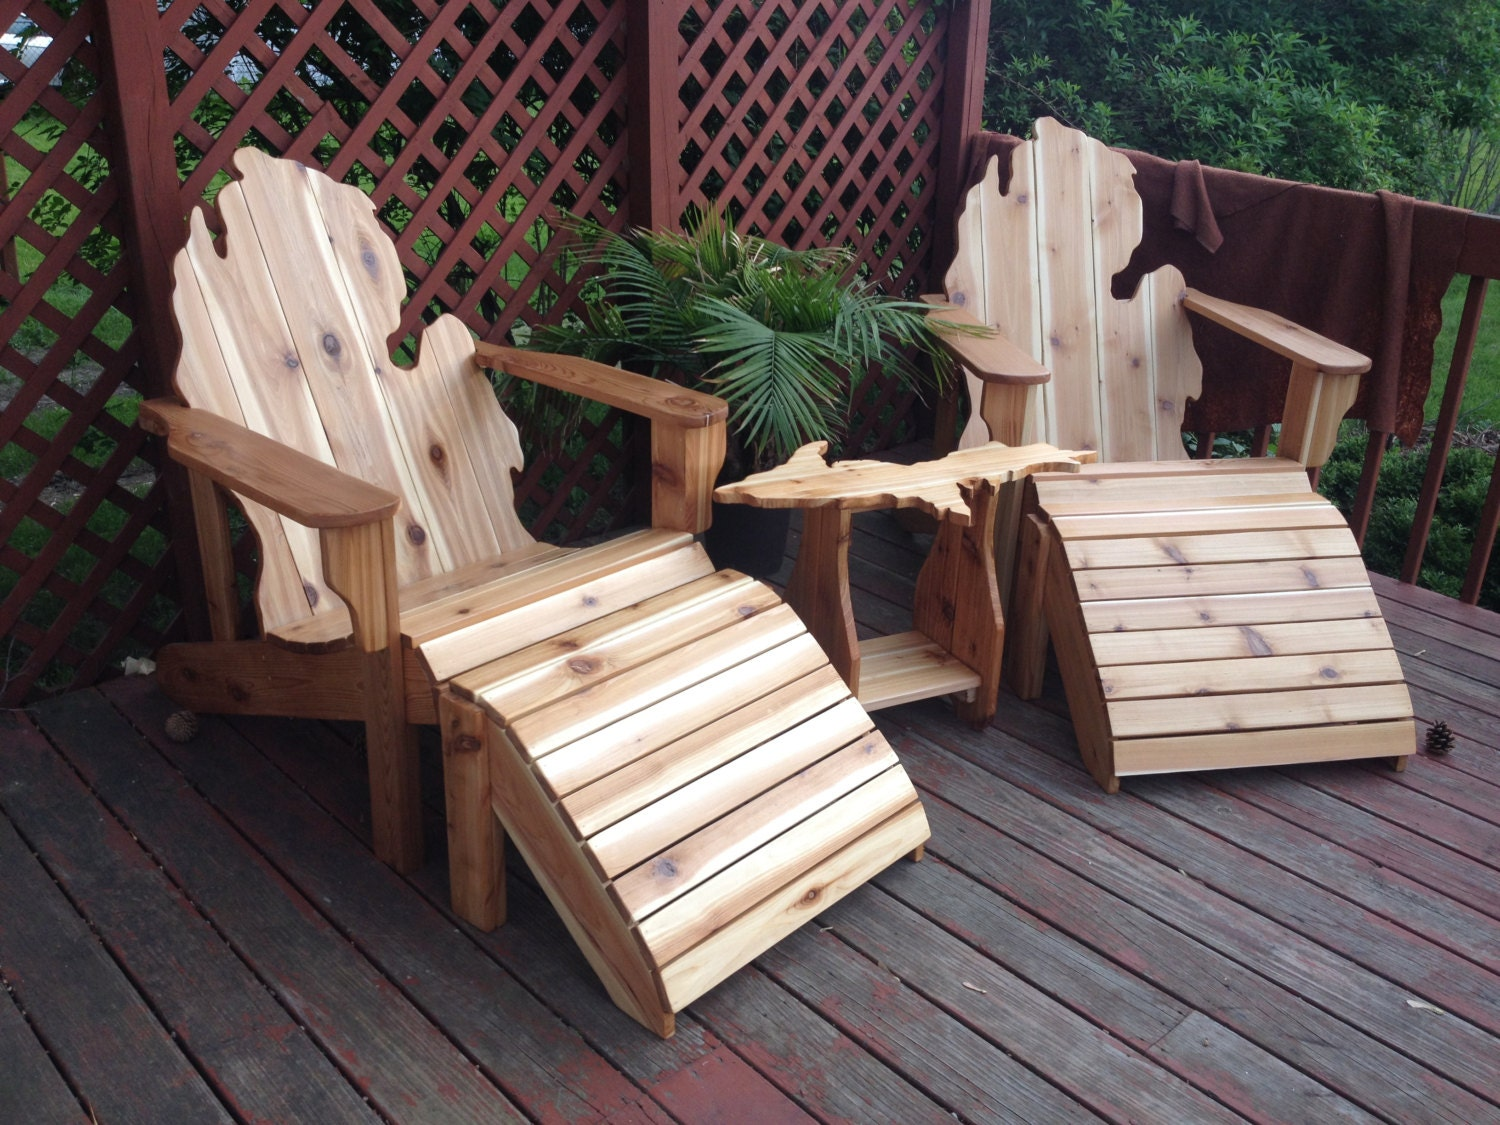 Deluxe Patio Set Michigan Adirondack Chairs Ottomans And